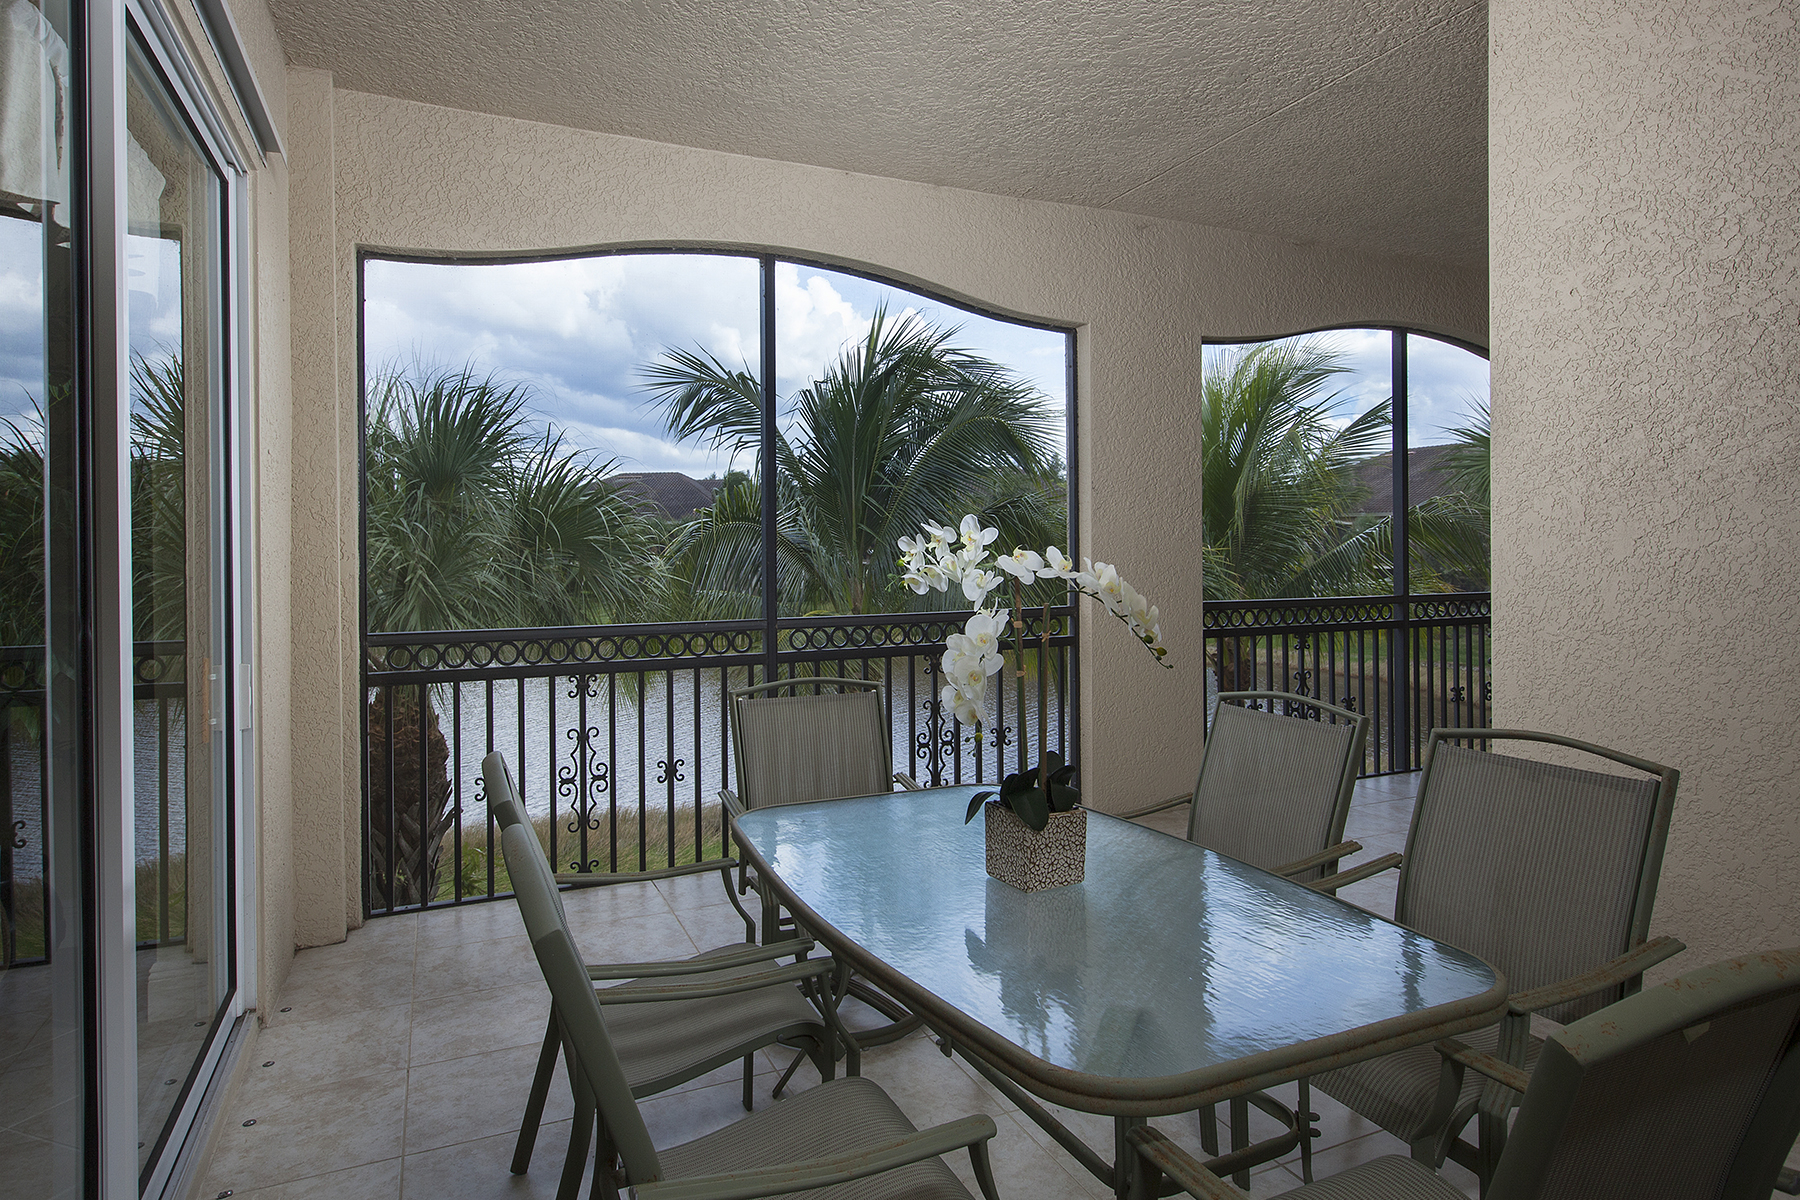 Condominium for Sale at FIDDLER'S CREEK - VARENNA 9224 Campanile Cir 201 Naples, Florida, 34114 United States